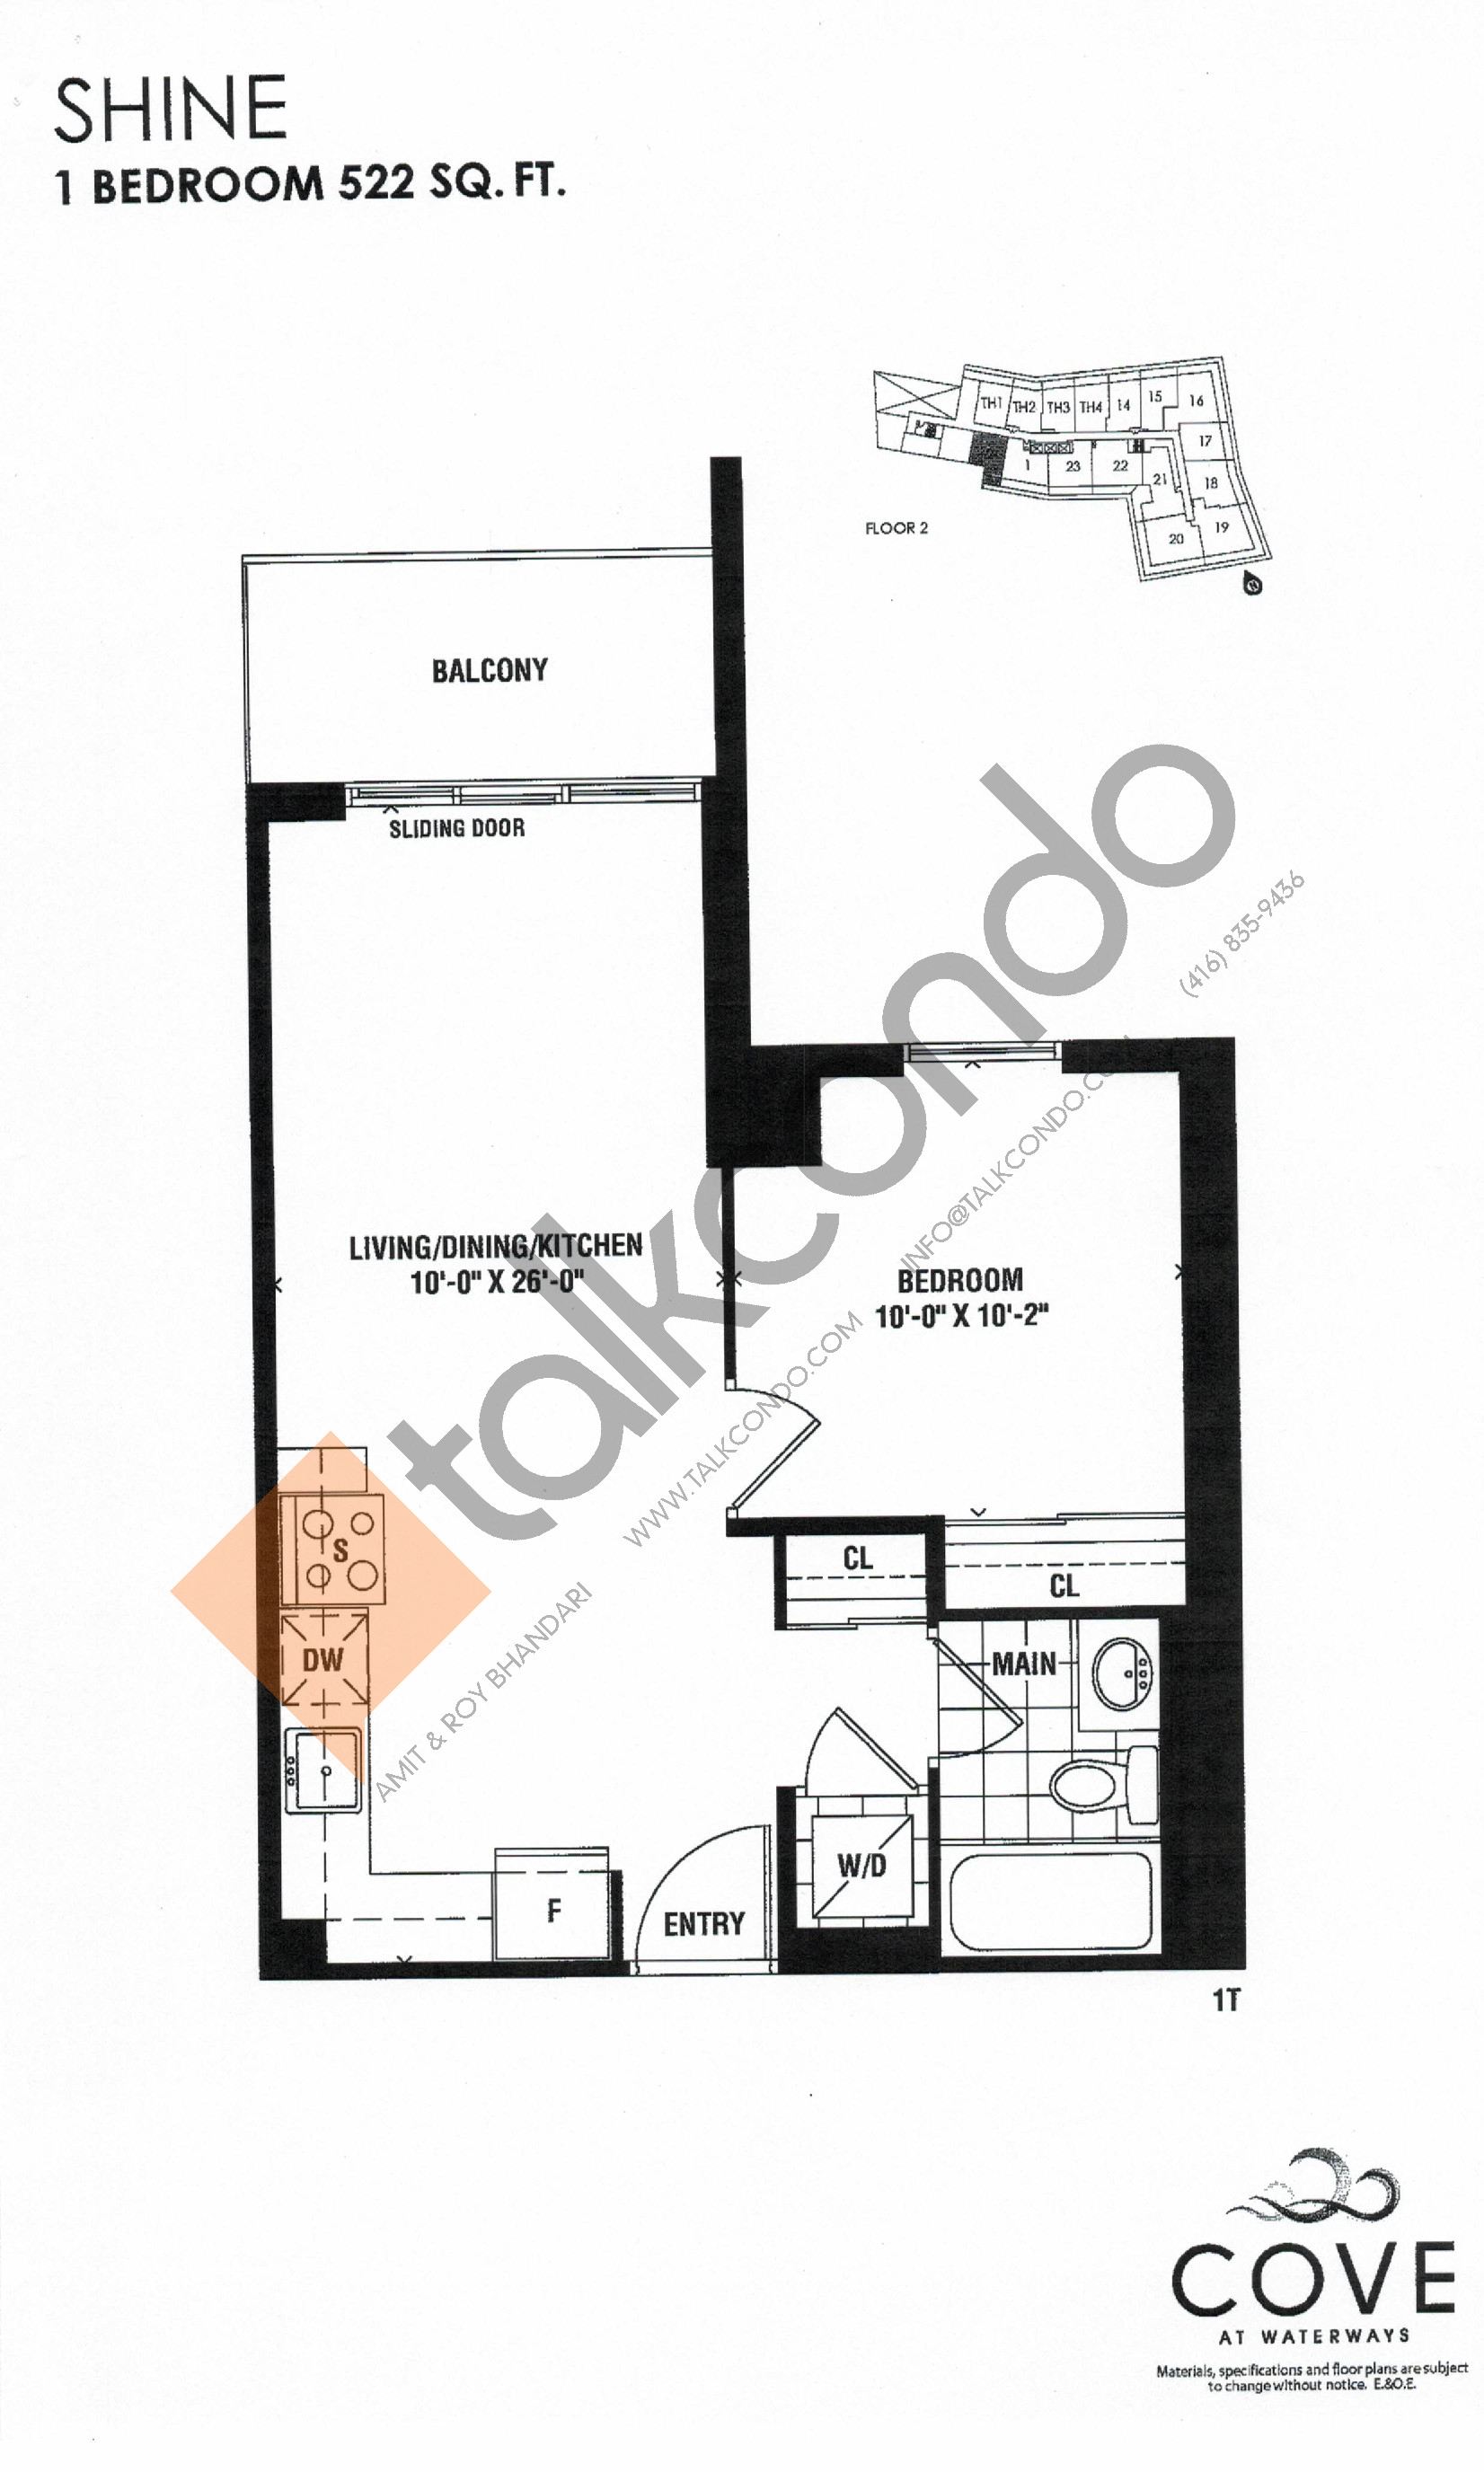 Shine Floor Plan at Cove at Waterways Condos - 522 sq.ft